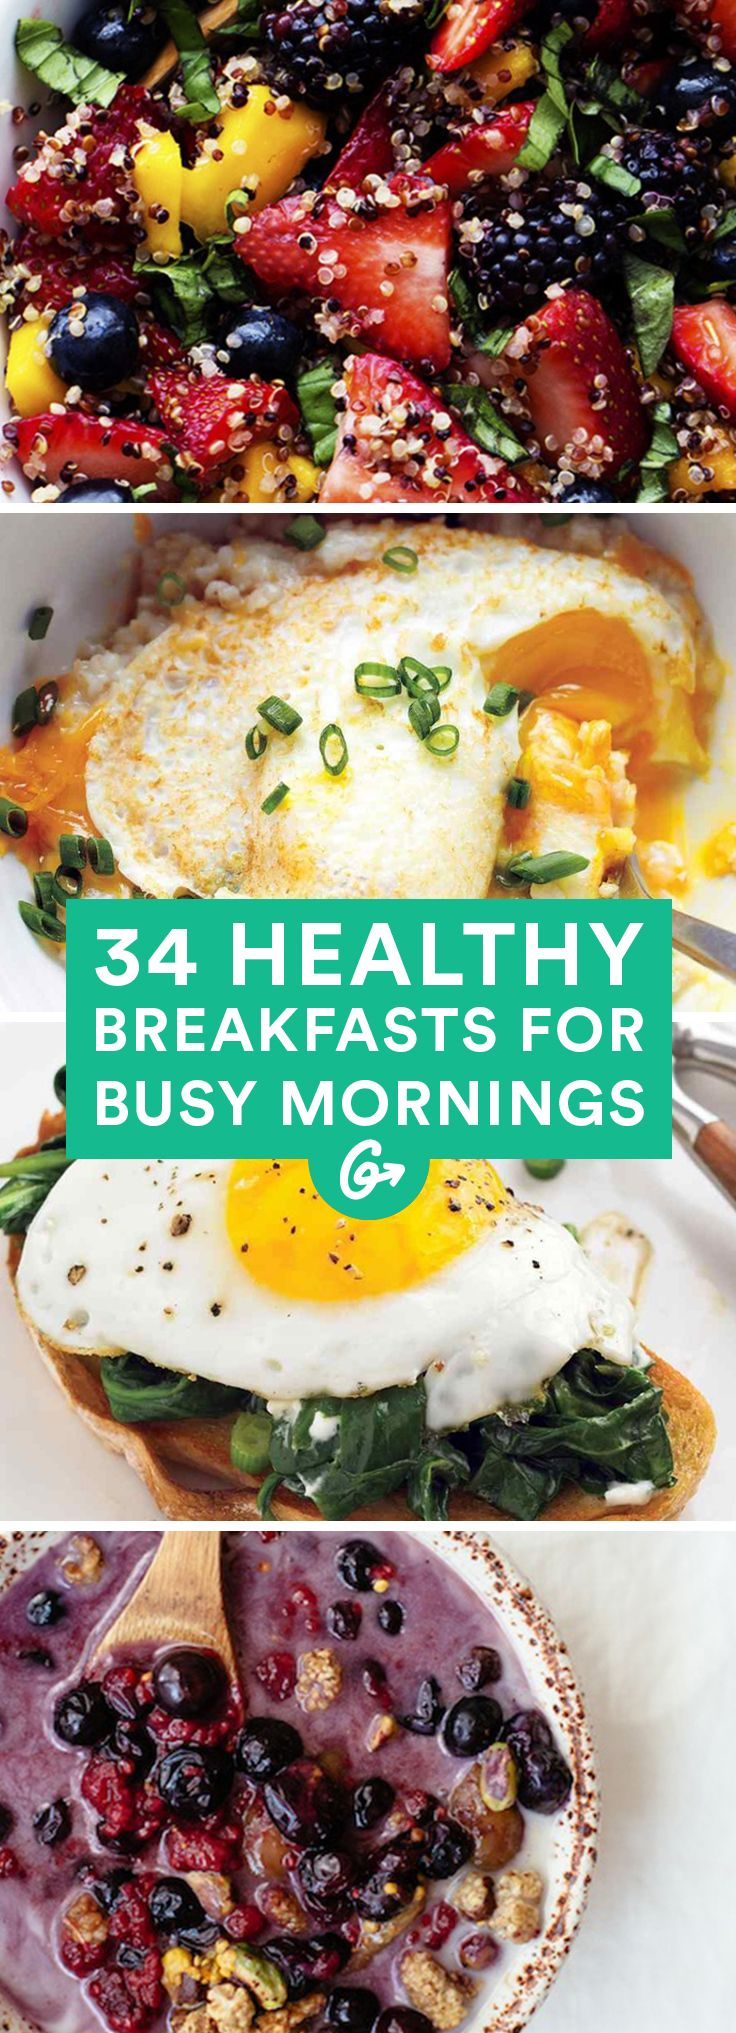 34 Healthy Breakfasts for Busy Mornings #healthy #breakfast #recipes http://greatist.com/health/healthy-fast-breakfast-recipes